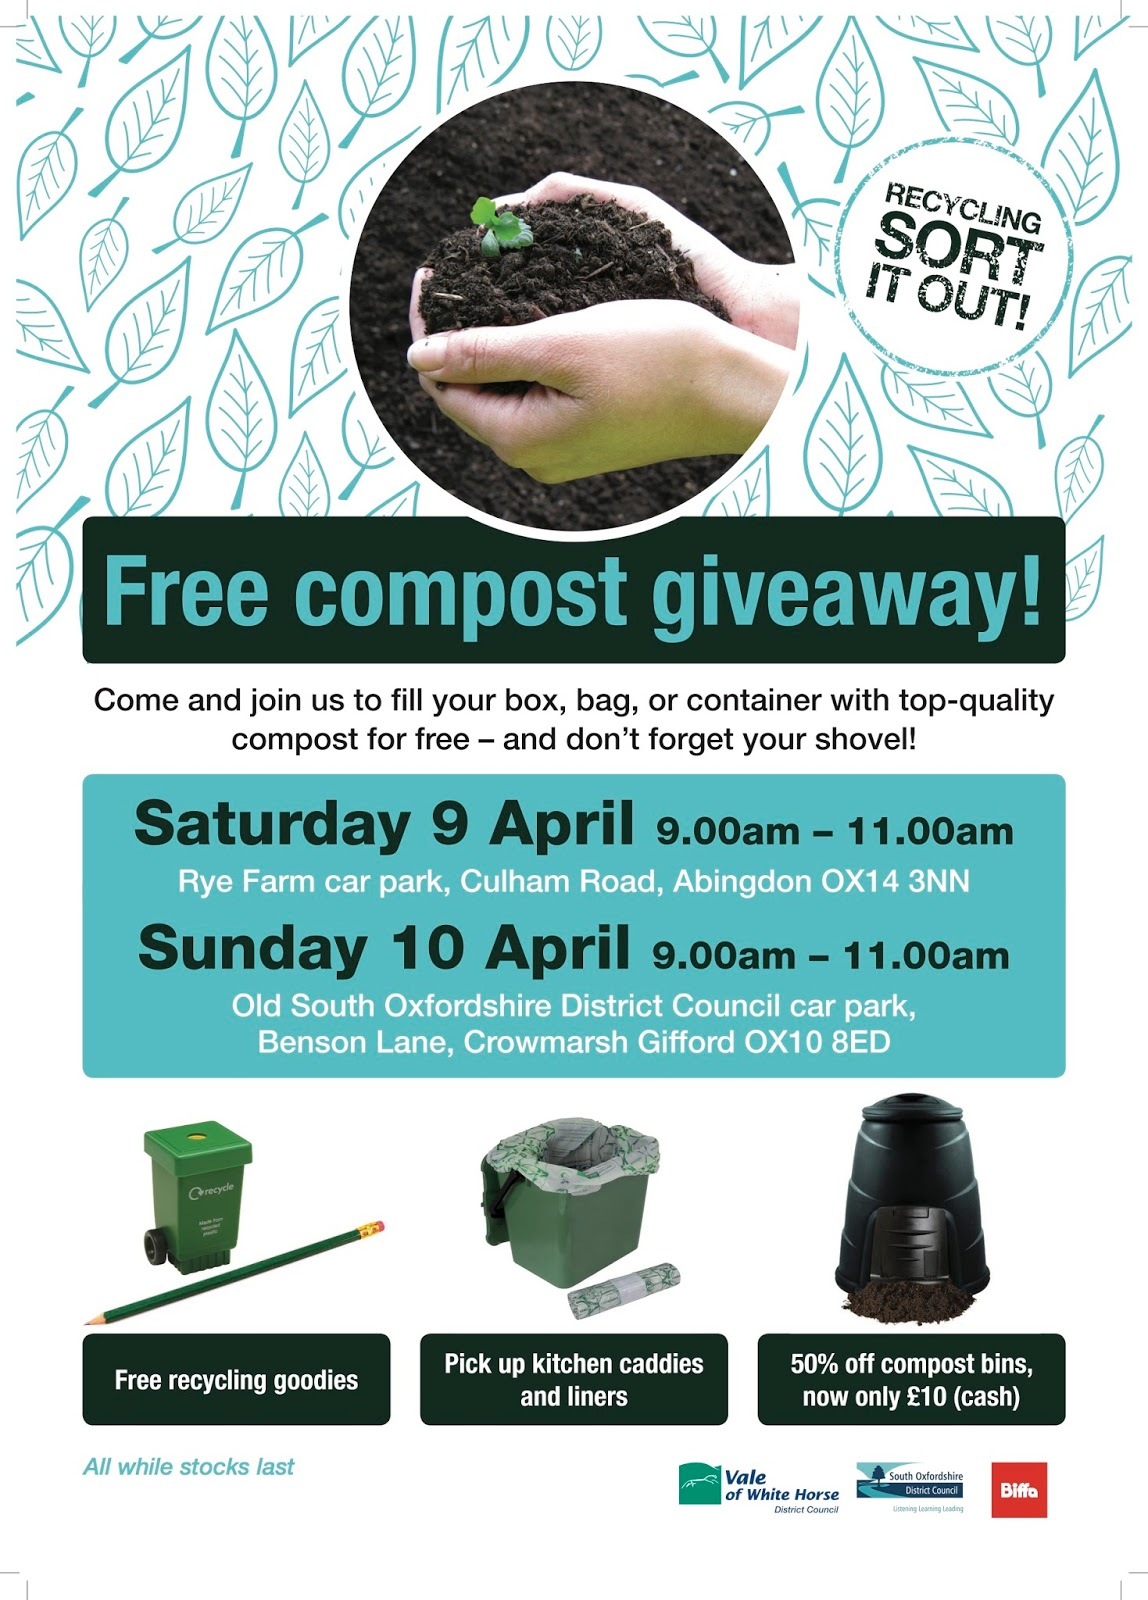 Oxfordshire Master Composters: Free compost giveaway!